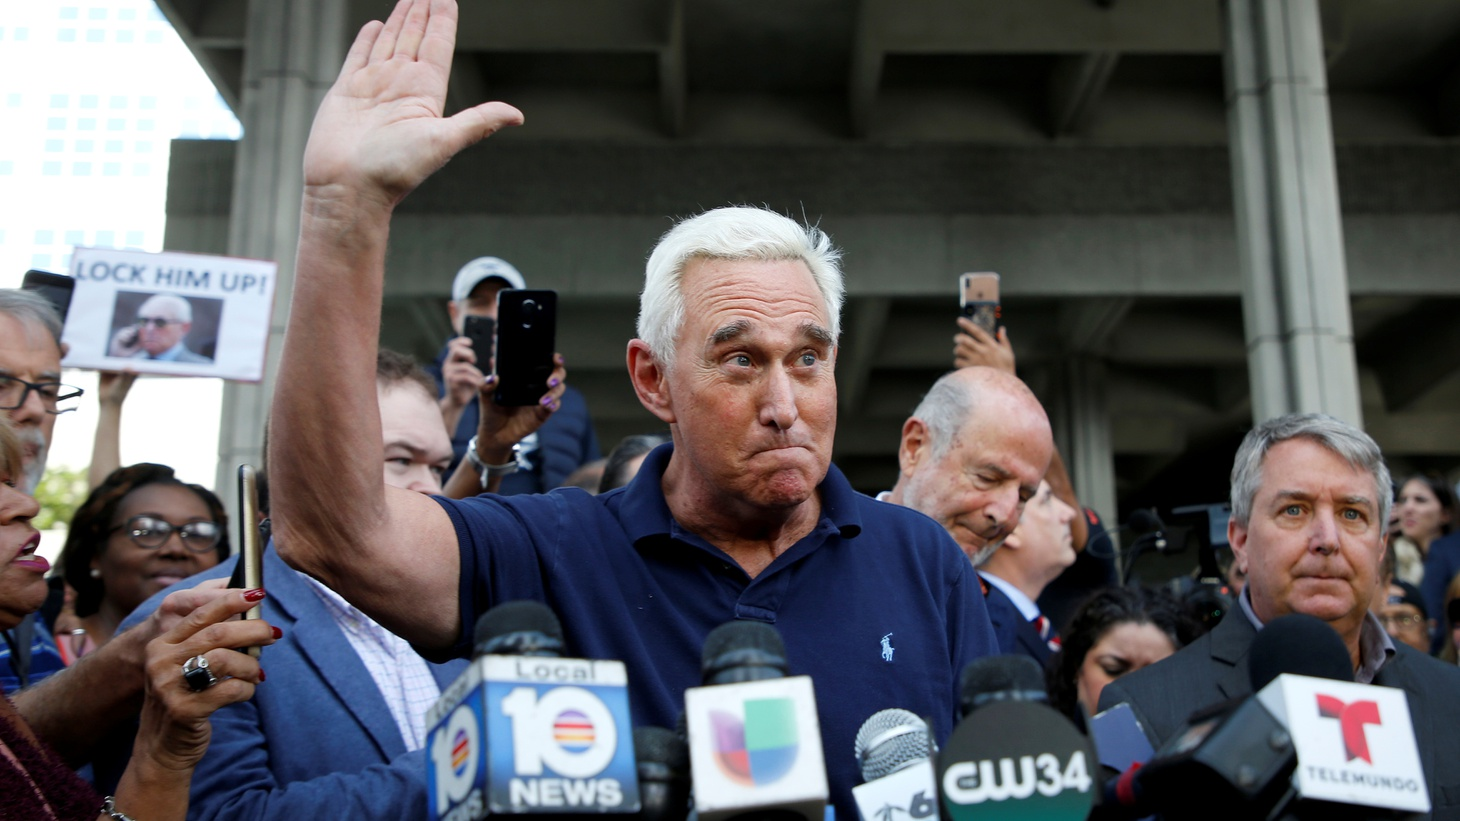 Roger Stone speaks after his appearance at Federal Court in Fort Lauderdale, Florida, U.S., January 25, 2019.